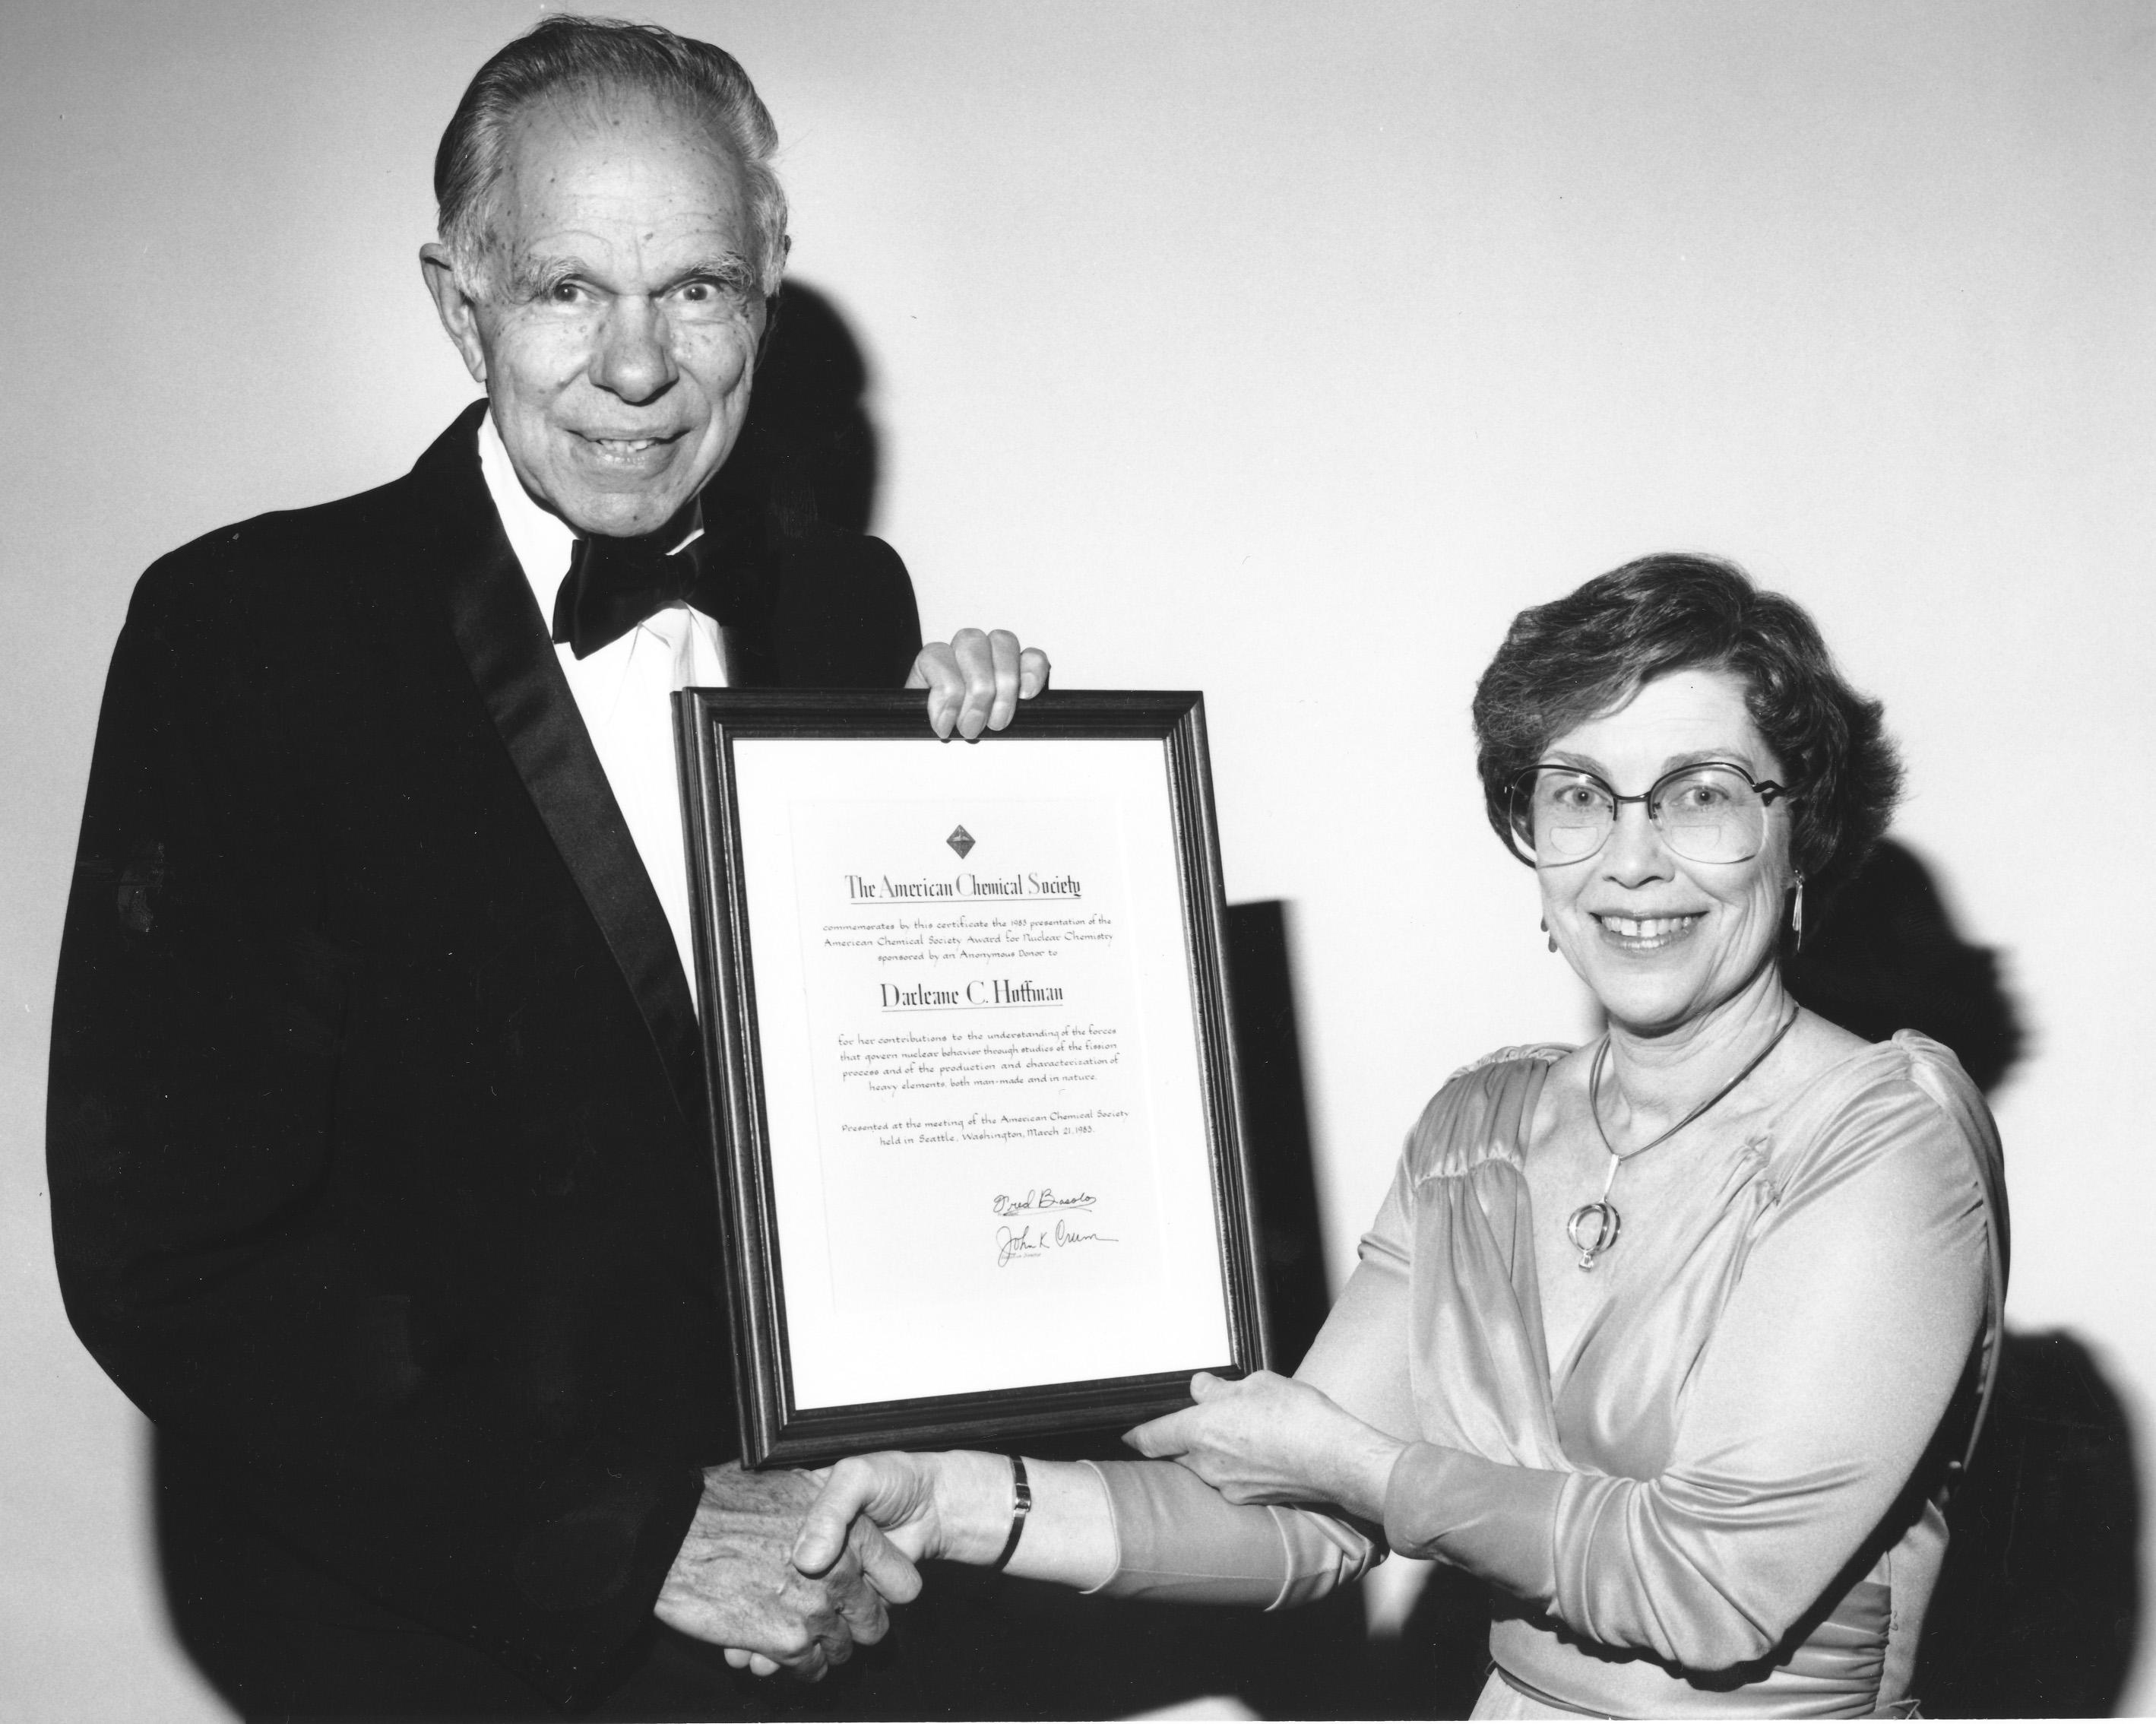 American Chemical Society Award for Nuclear Chemistry Presented by Dr. Glenn T. Seaborg to Dr. Darleane C. Hoffman